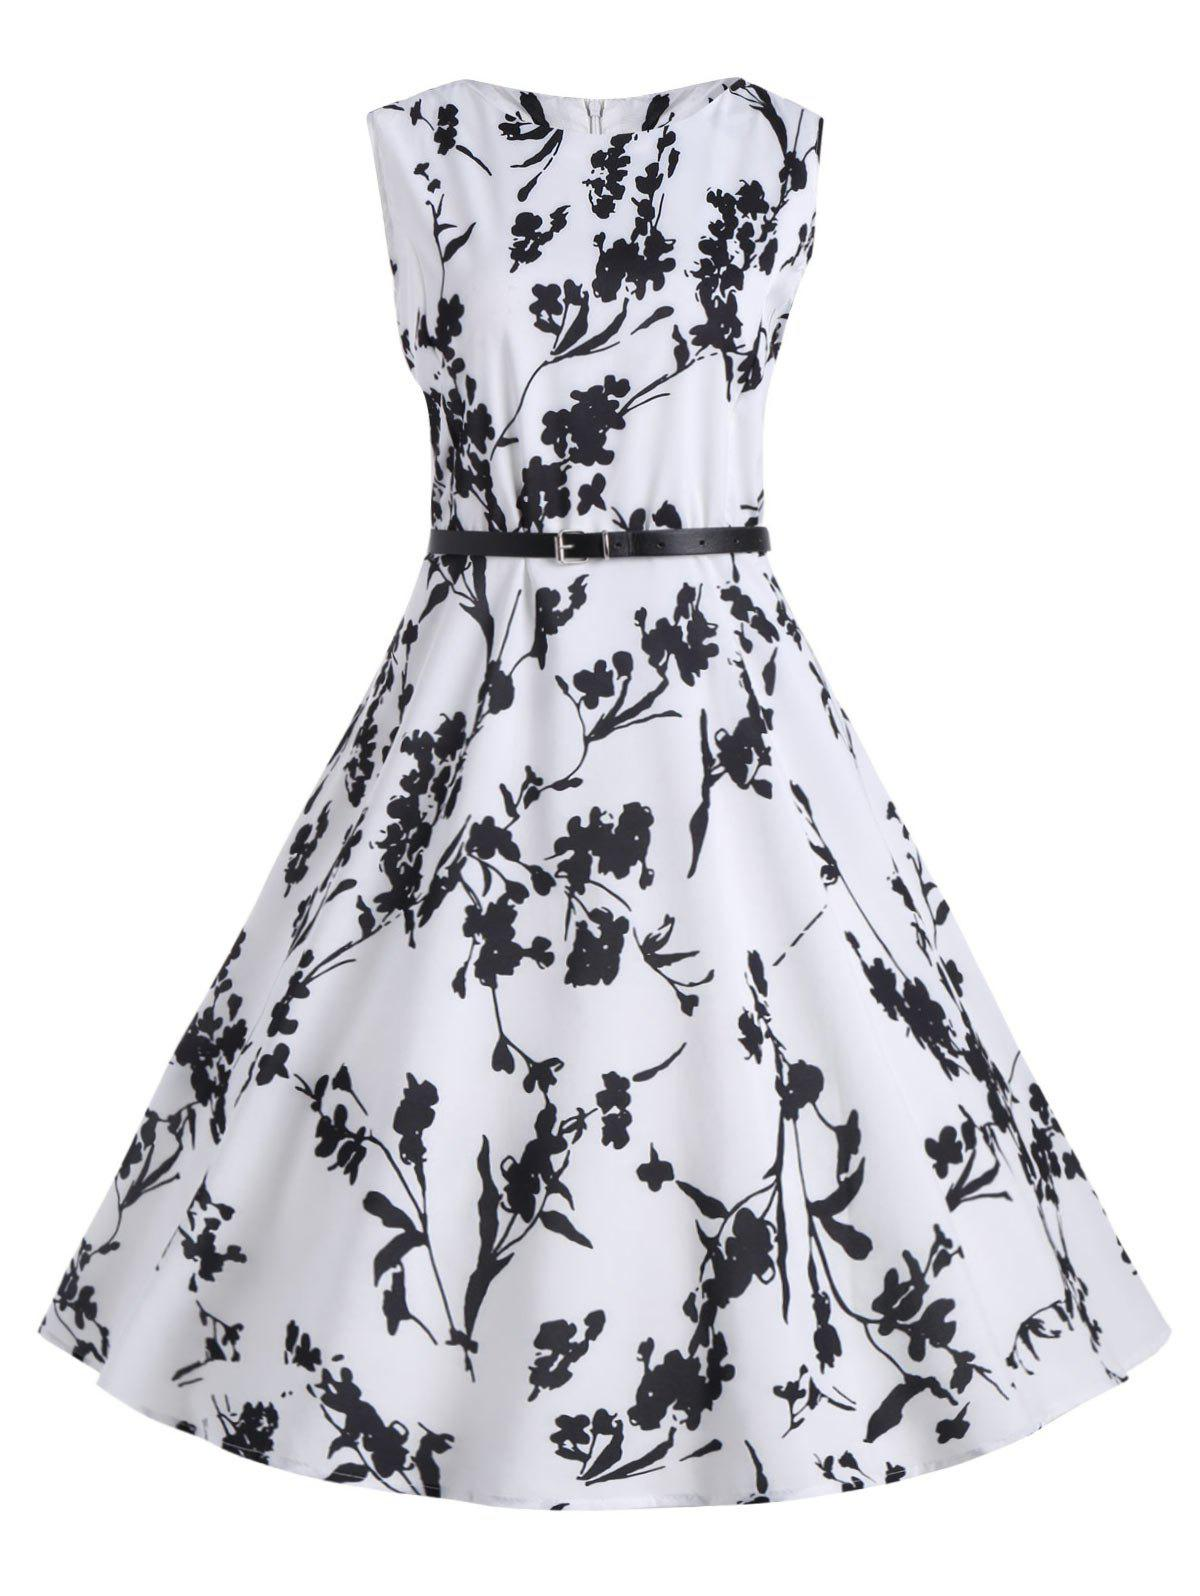 Plus Size Floral Midi Vintage Dress with BeltWOMEN<br><br>Size: 5XL; Color: WHITE; Style: Vintage; Material: Cotton Blend,Polyester; Silhouette: A-Line; Dresses Length: Mid-Calf; Neckline: Round Collar; Sleeve Length: Sleeveless; Embellishment: Vintage; Pattern Type: Floral,Print; With Belt: Yes; Season: Spring,Summer; Weight: 0.2400kg; Package Contents: 1 x Dress 1 x Belt;